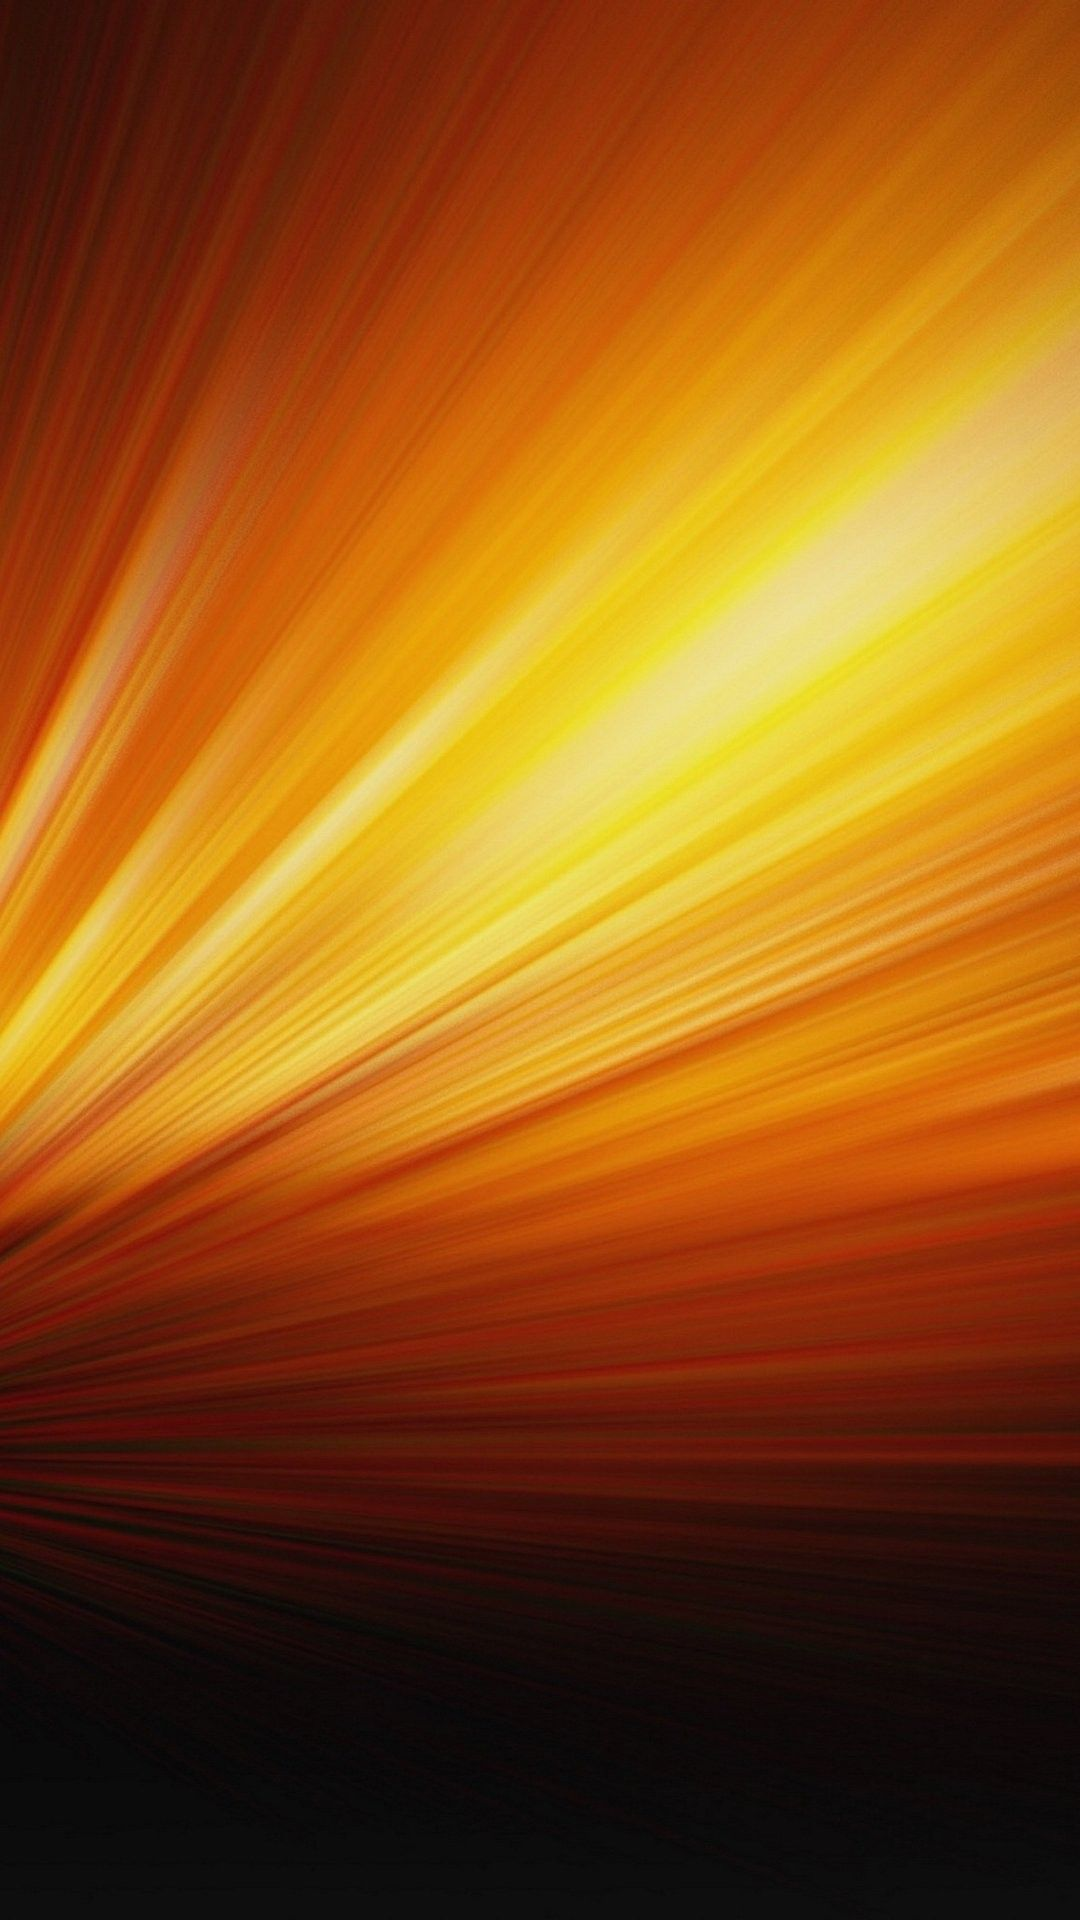 Tapete Modern Orange Light Hd Iphone 6 Plus Wallpaper 34823 - Abstract